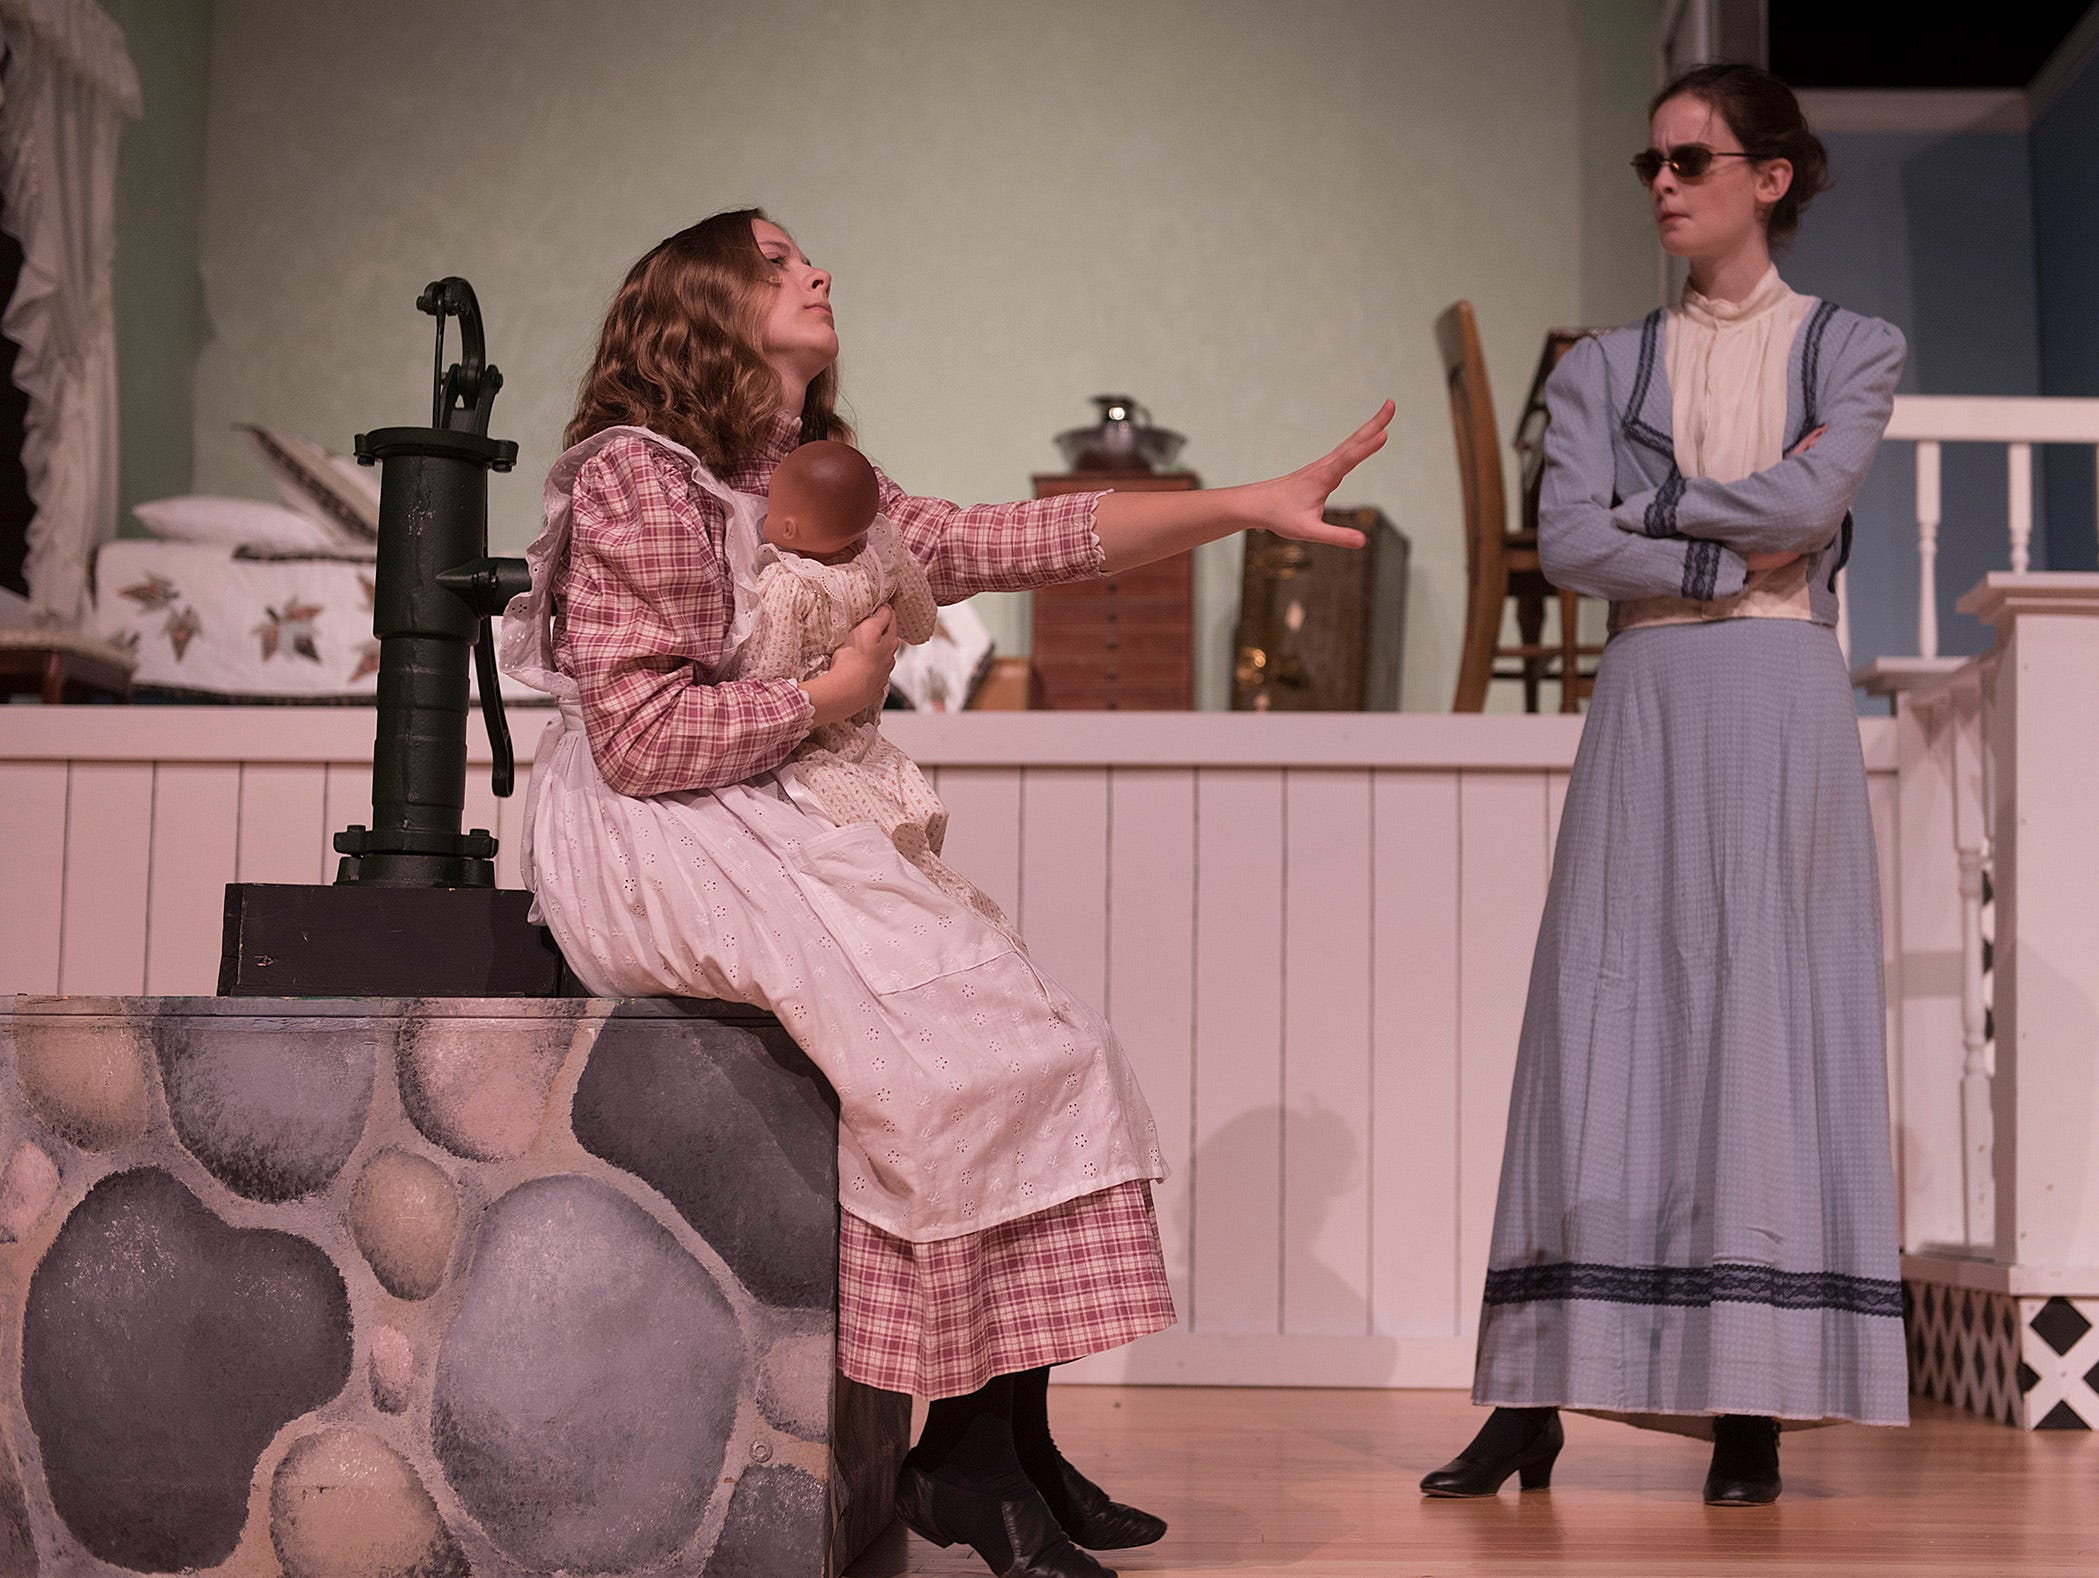 Annie Sullivan (Caitlin Griffin) gives her new charge Helen Keller (Jillian Bocketti) a doll, but it does nothing to help Helen bond with her teacher.